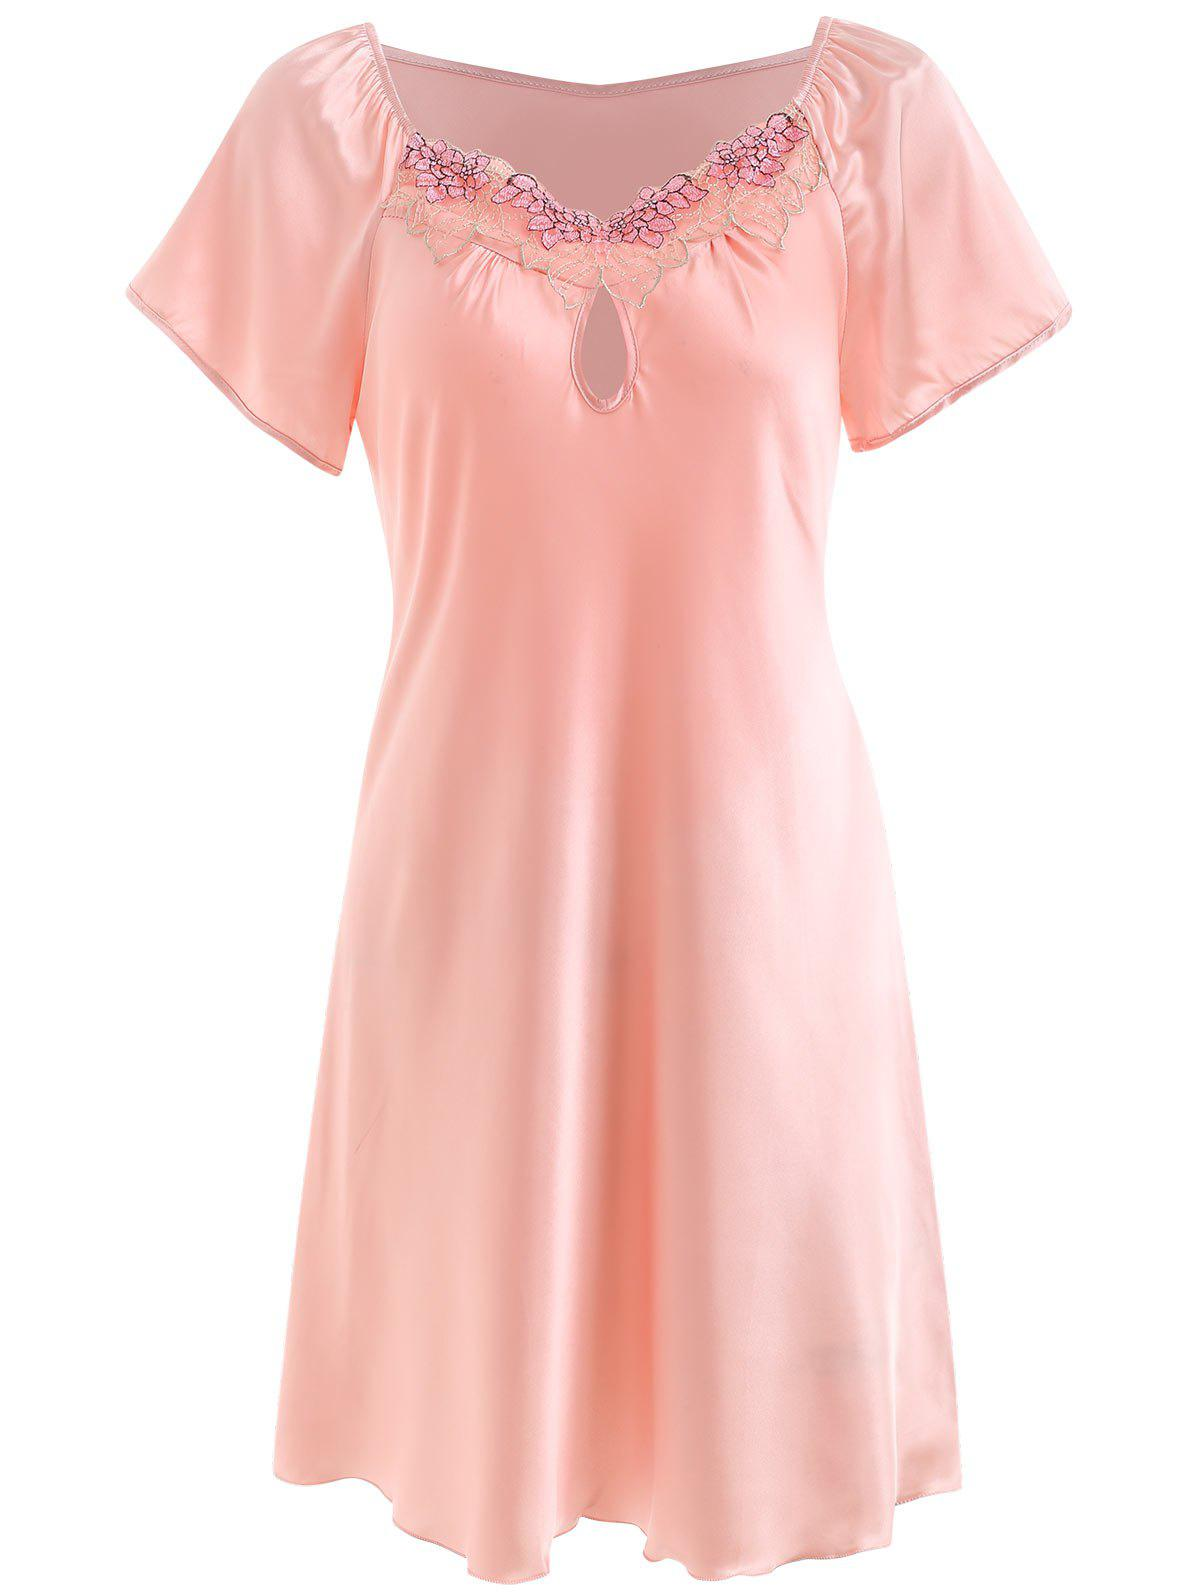 Shop Lace Panel Satin Sleeping Dress